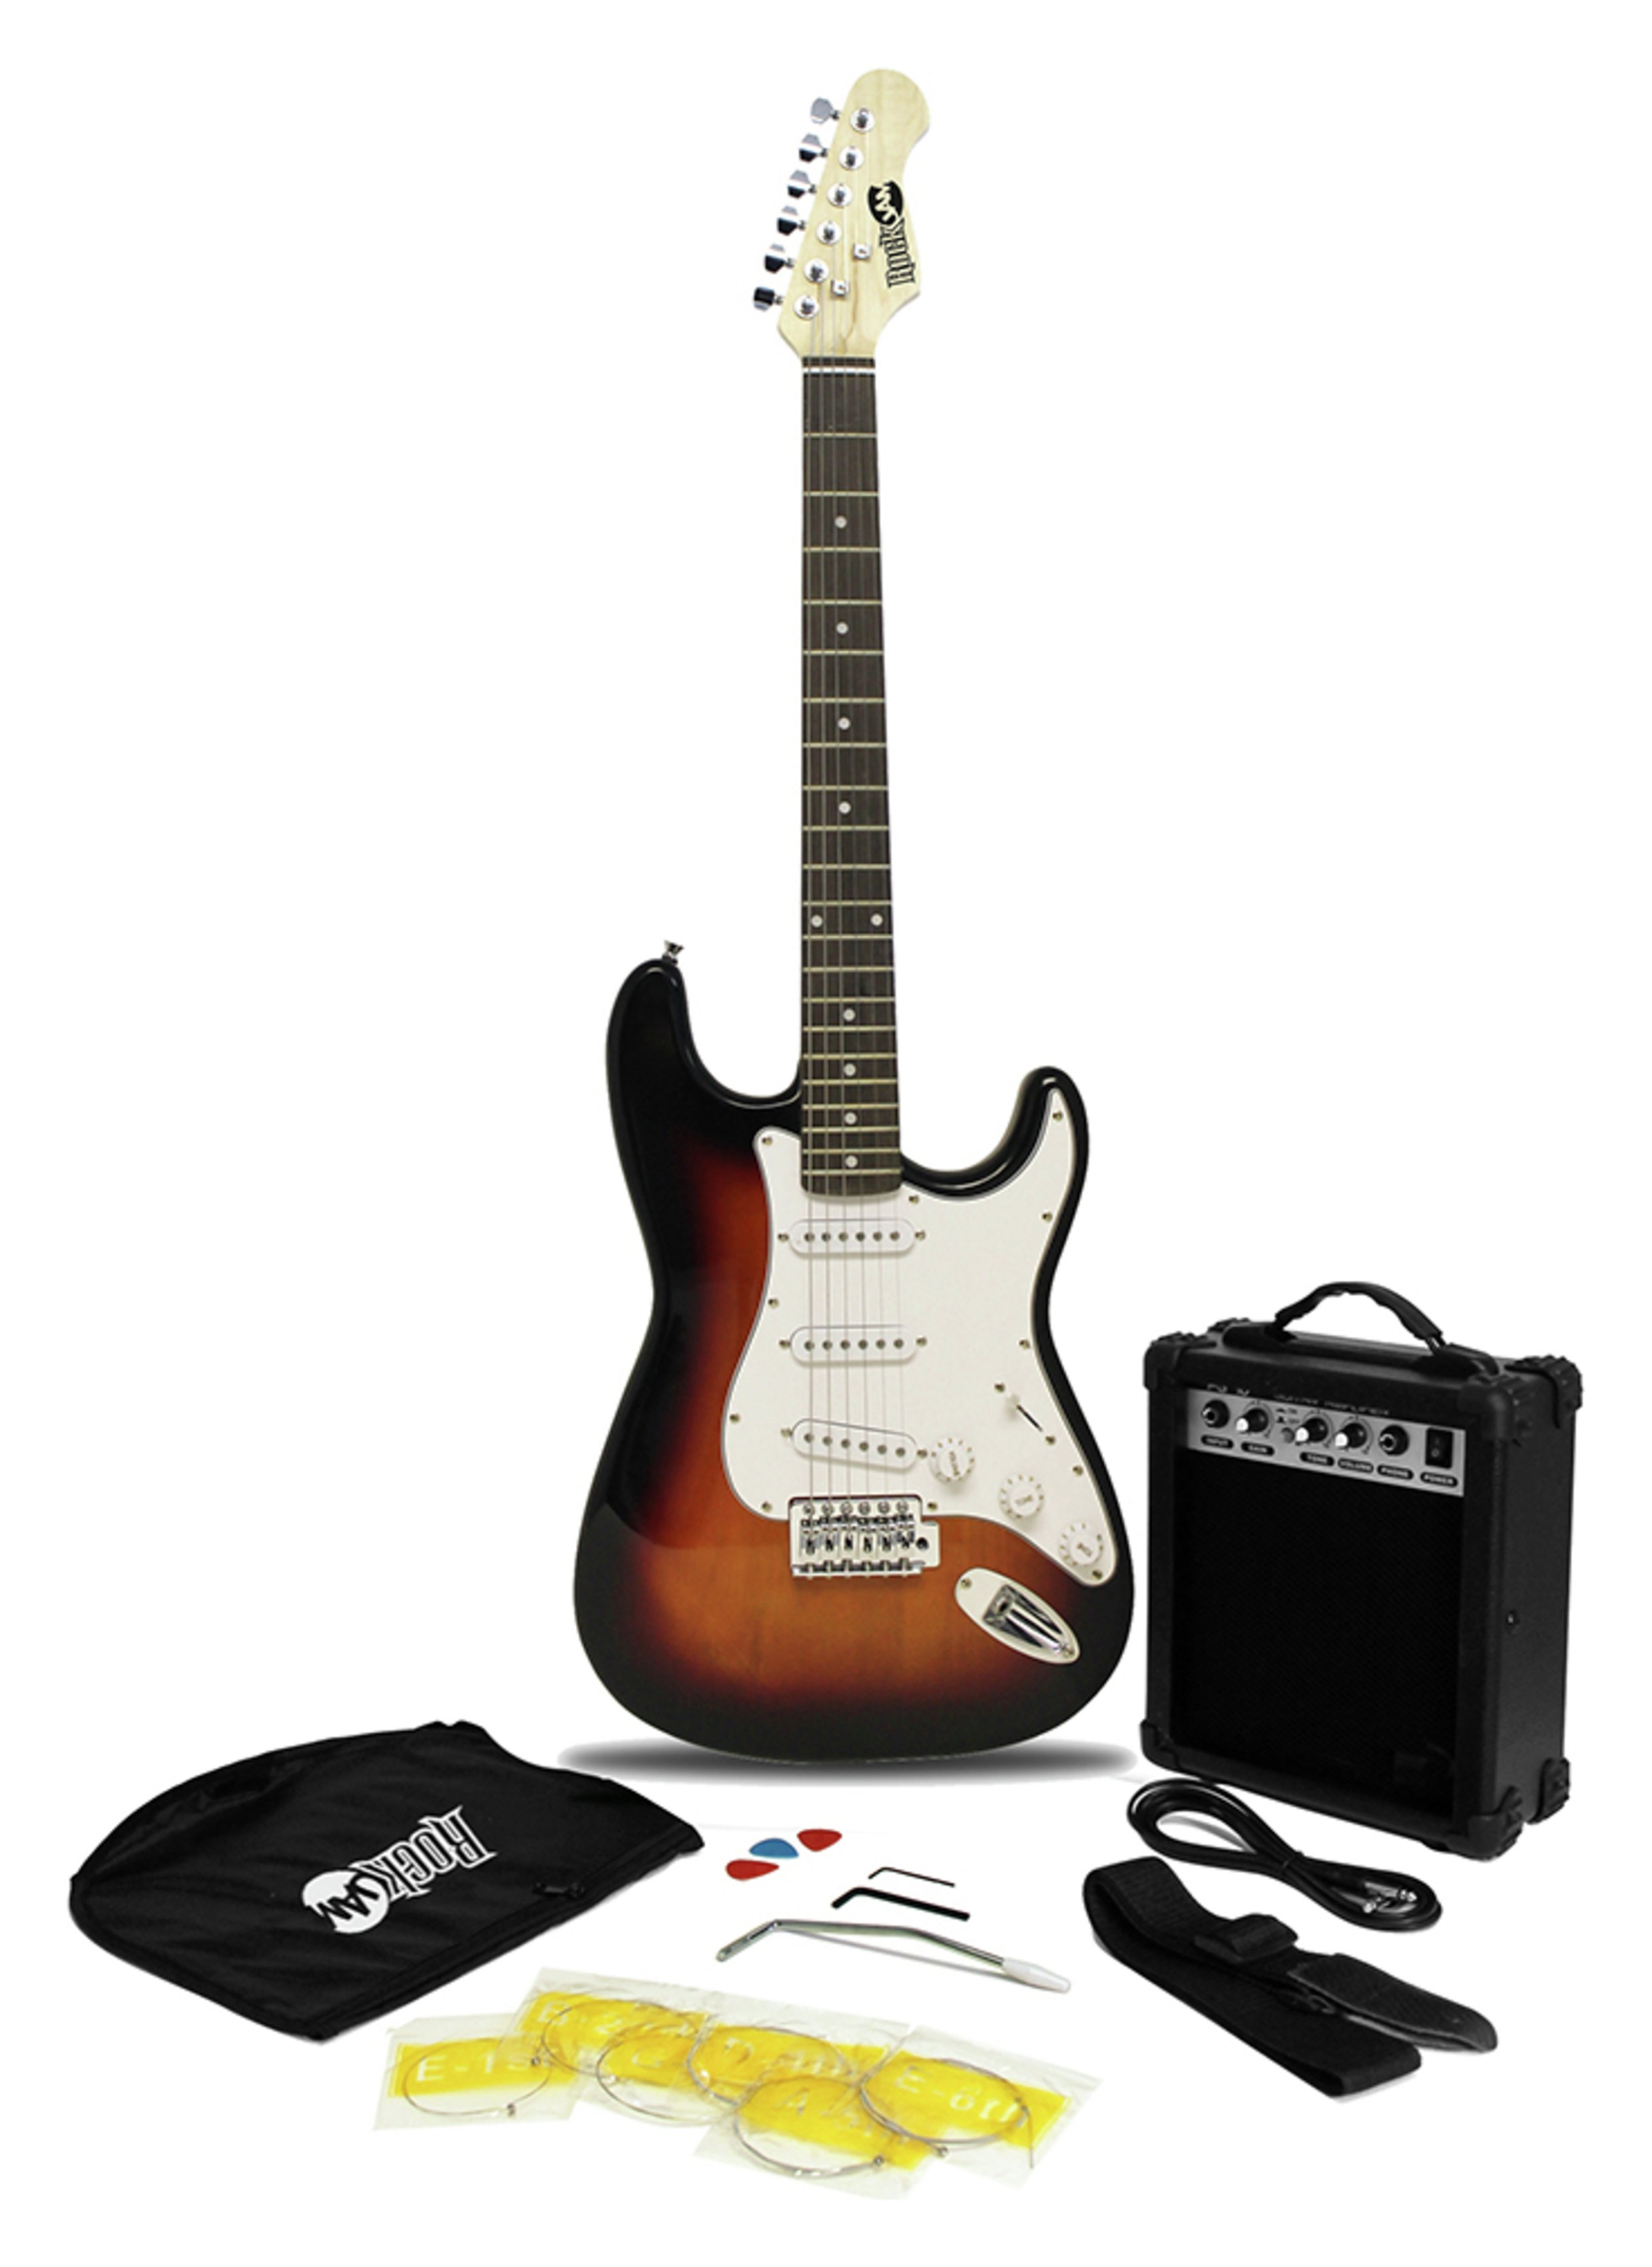 Rockburn Sunburst Electric Guitar Package